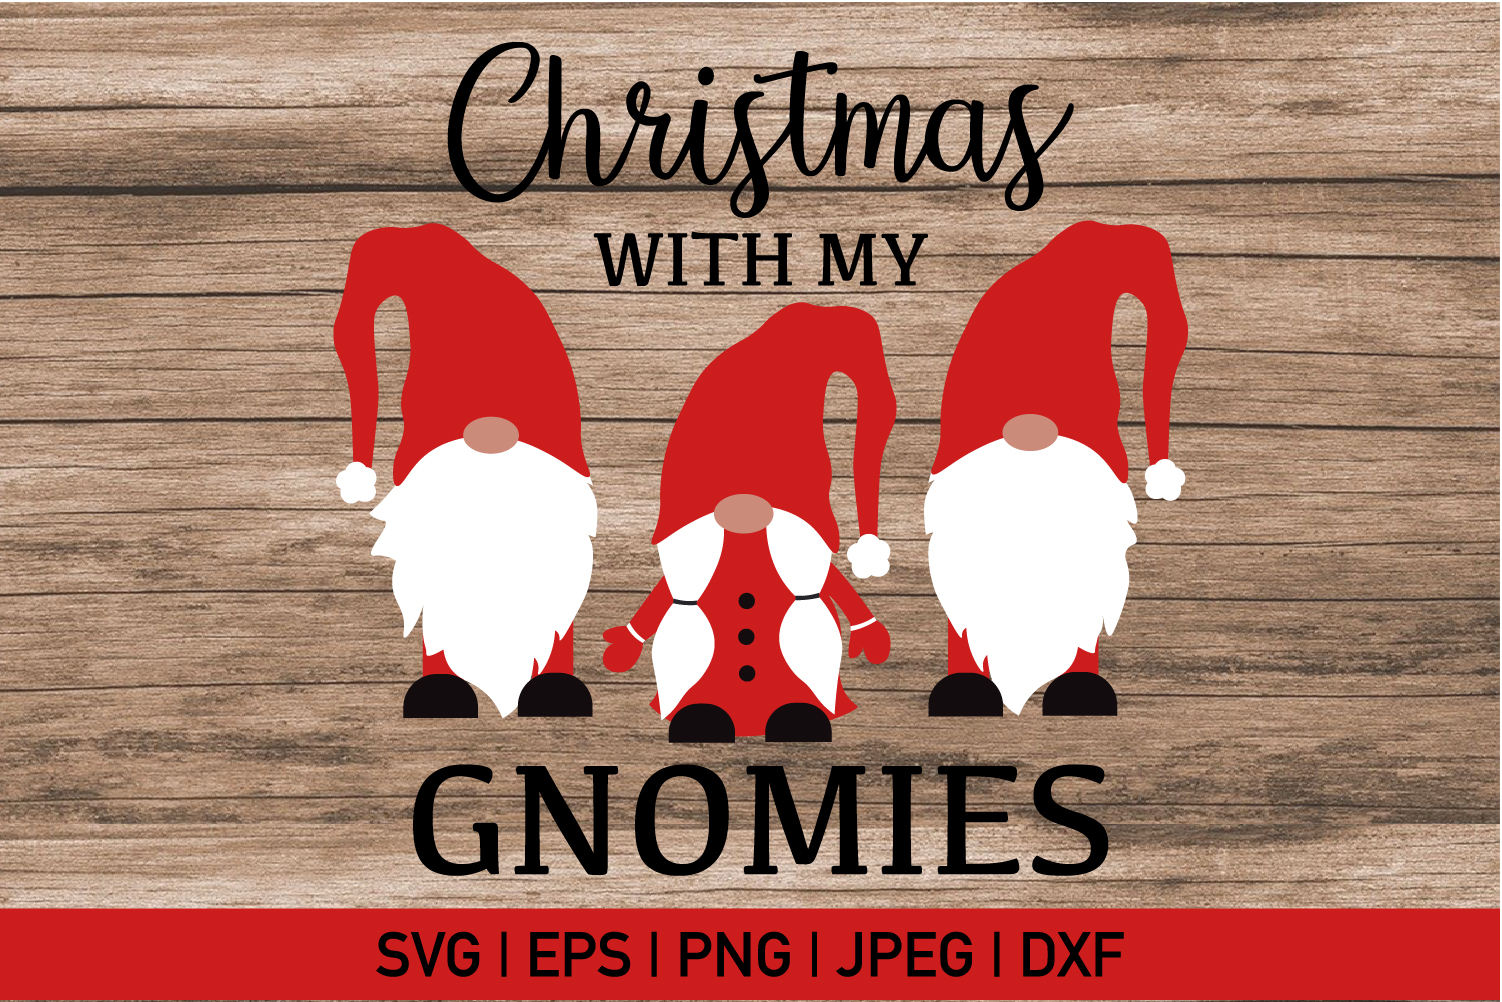 Christmas With My Gnomies Svg example image 2